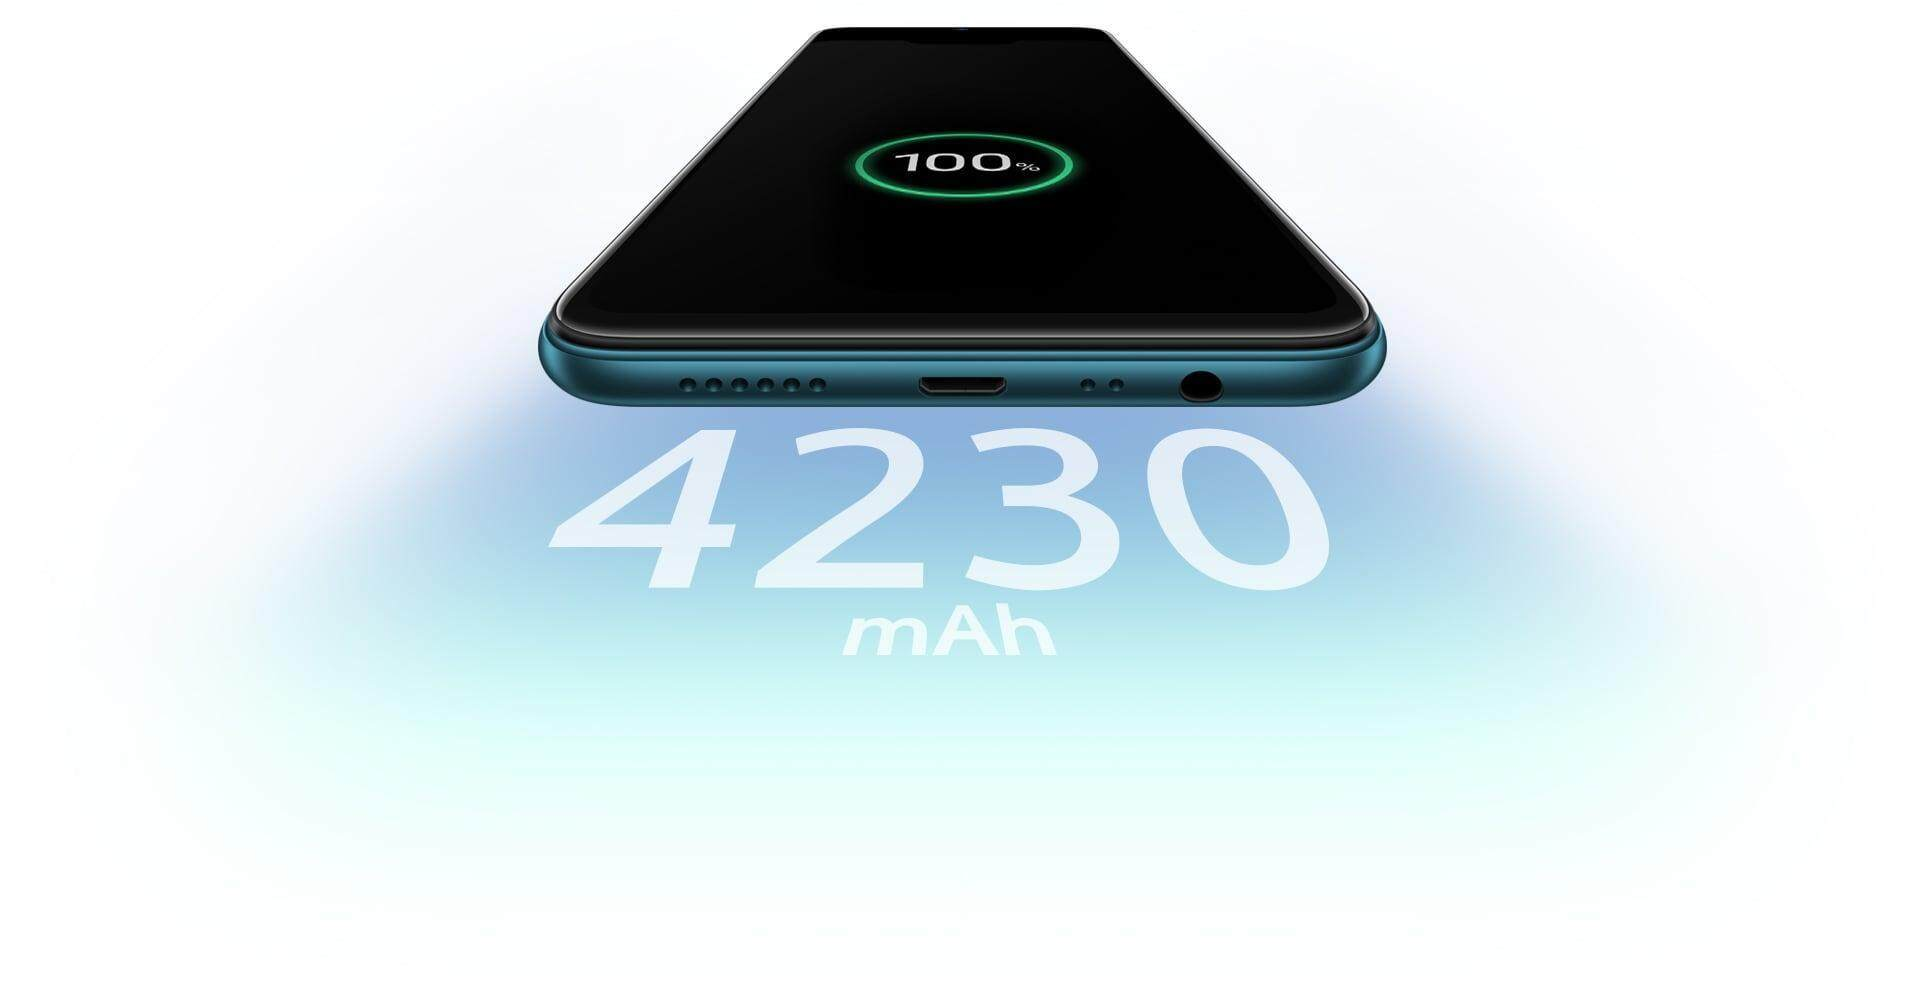 OPPO A7 - 4230mAh battery